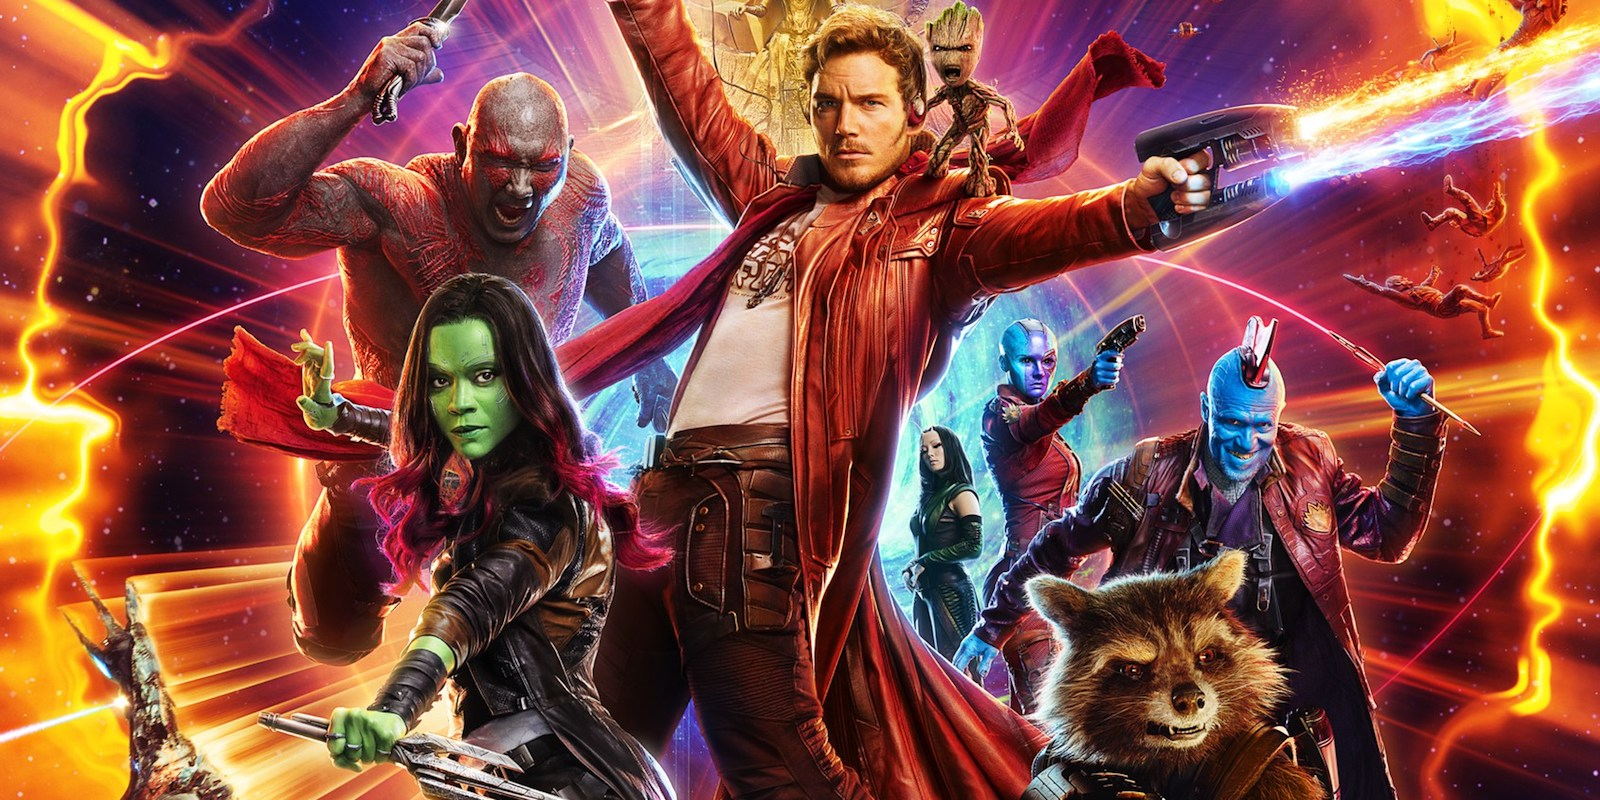 The Good The Bad and the Geeky Episode 336 - Guardians of the Galaxy Vol. 2